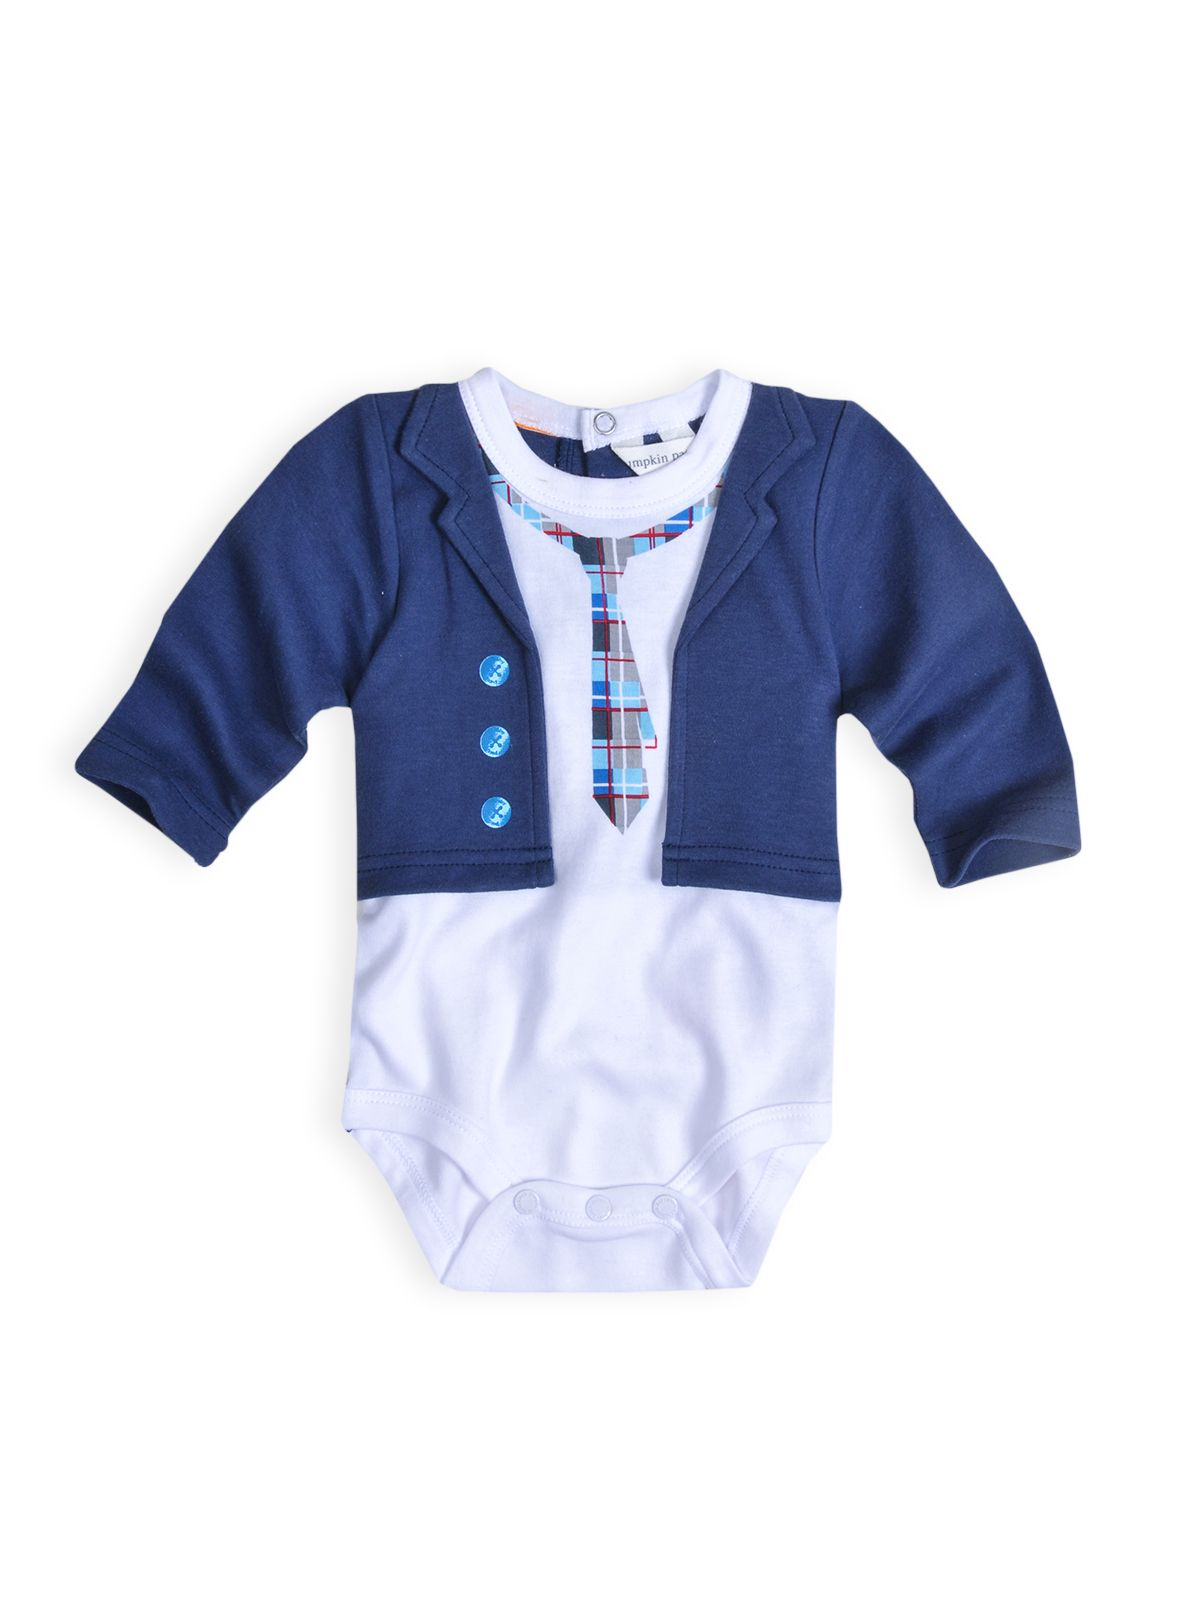 Boys printed suit bodysuit